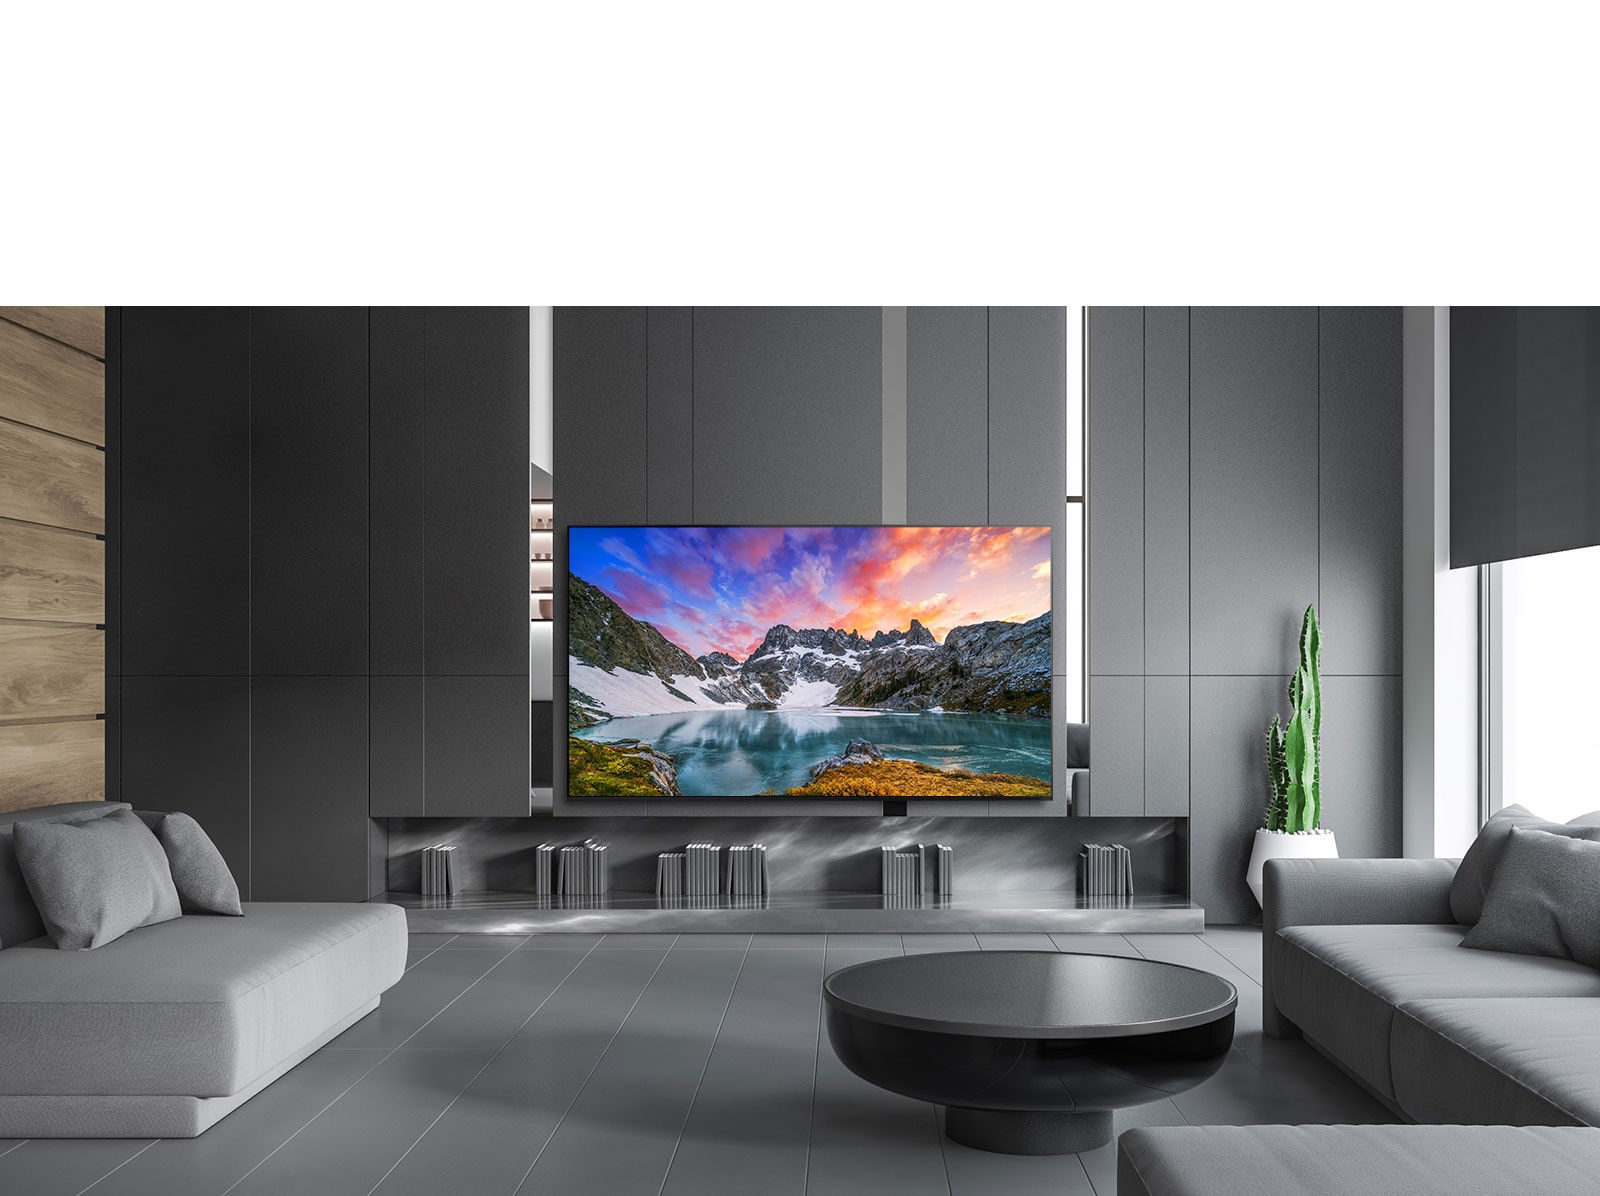 TV showing an eye level view of nature in a luxurious house setting